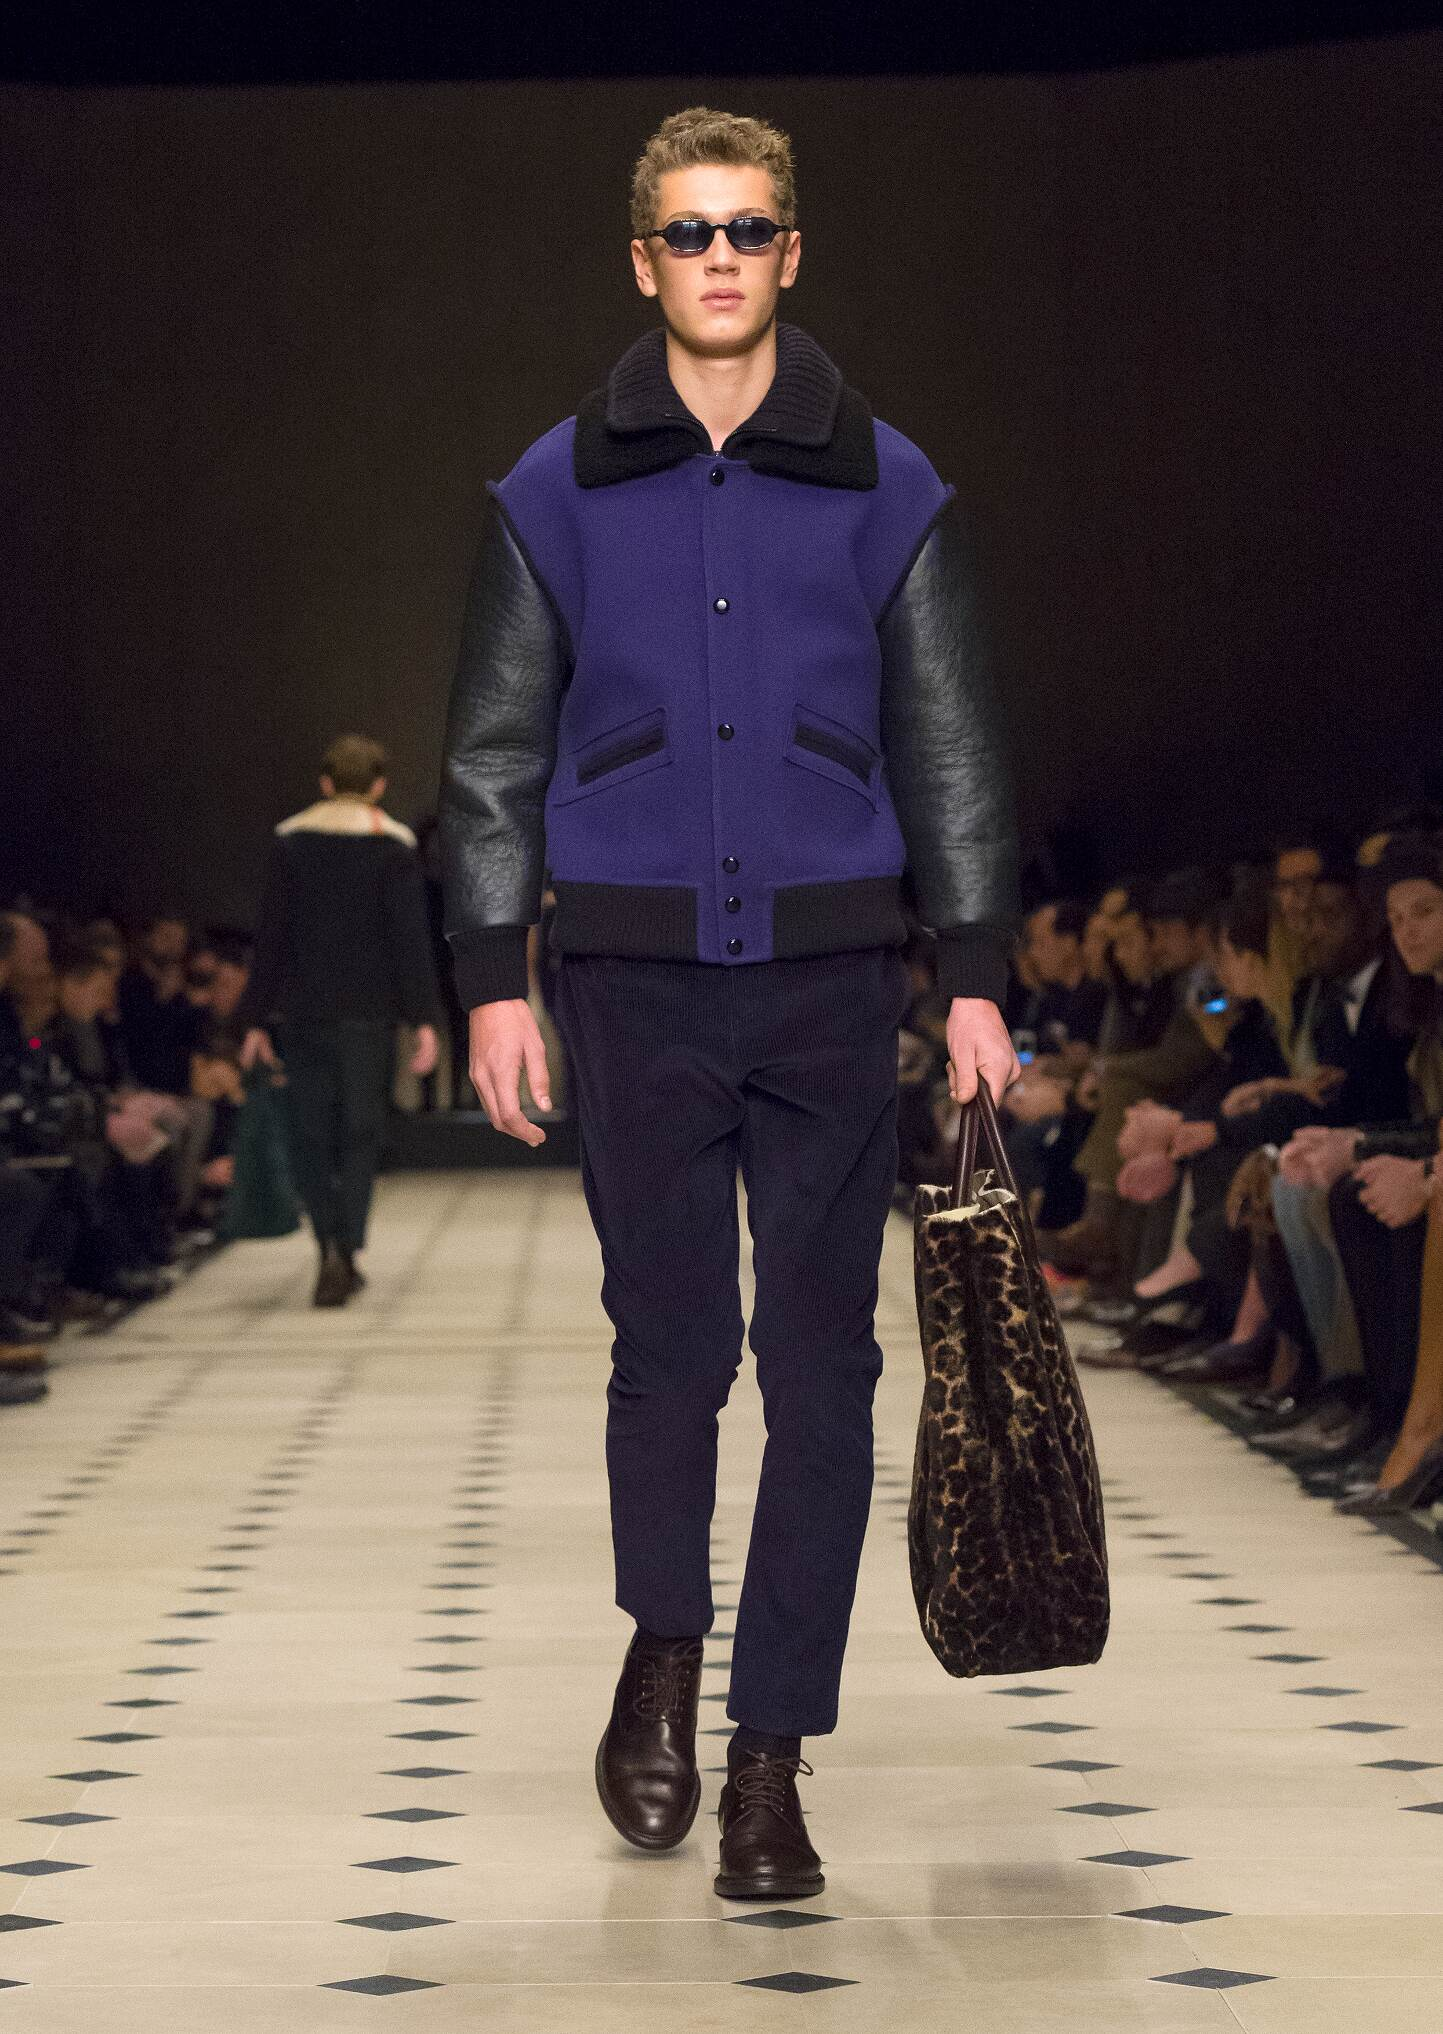 Winter Fashion Trends 2015 Burberry Prorsum